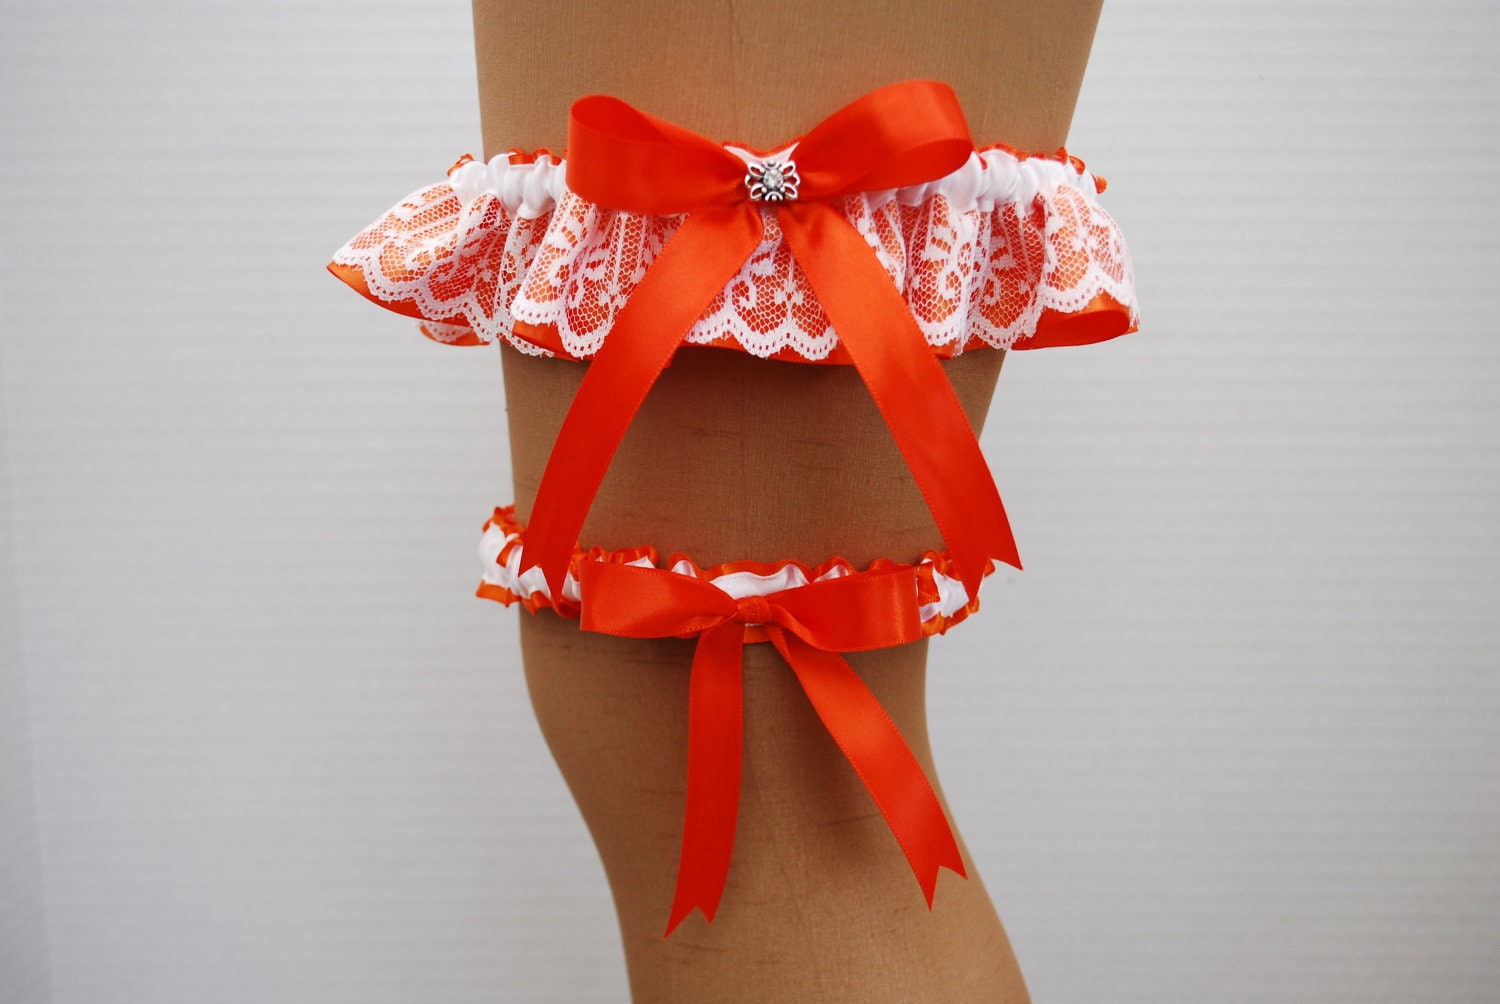 Wedding Garter Set - Torrid Orange Satin Ribbon with White Lace Overlay and Swarovski Crystal Charm - KimKatDesigns